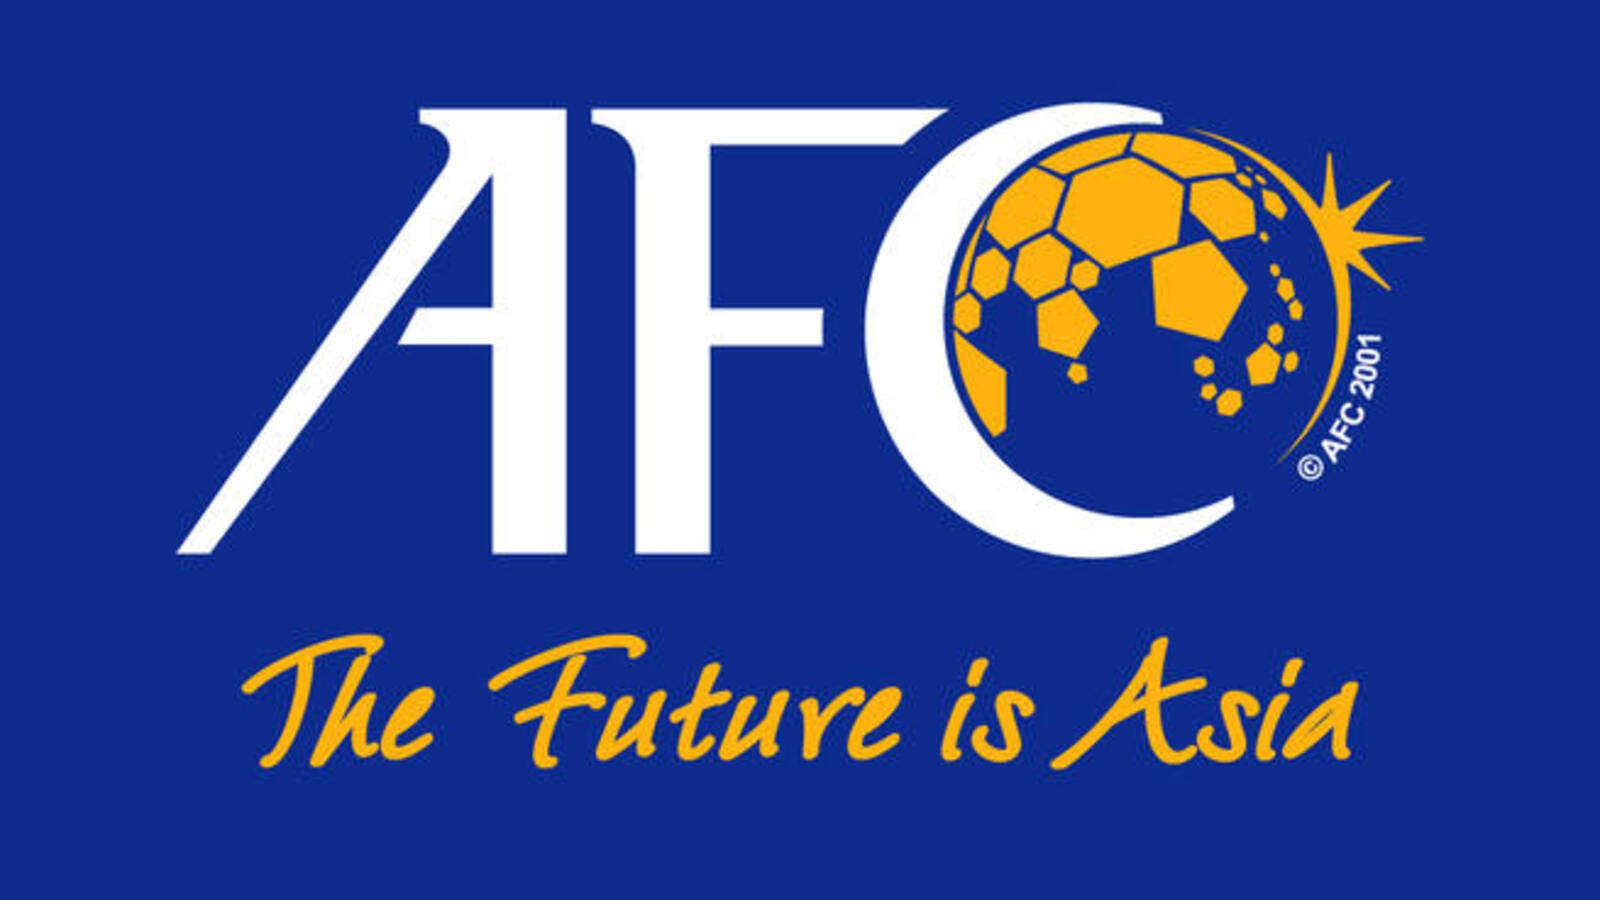 The Asian Football Confederation logo